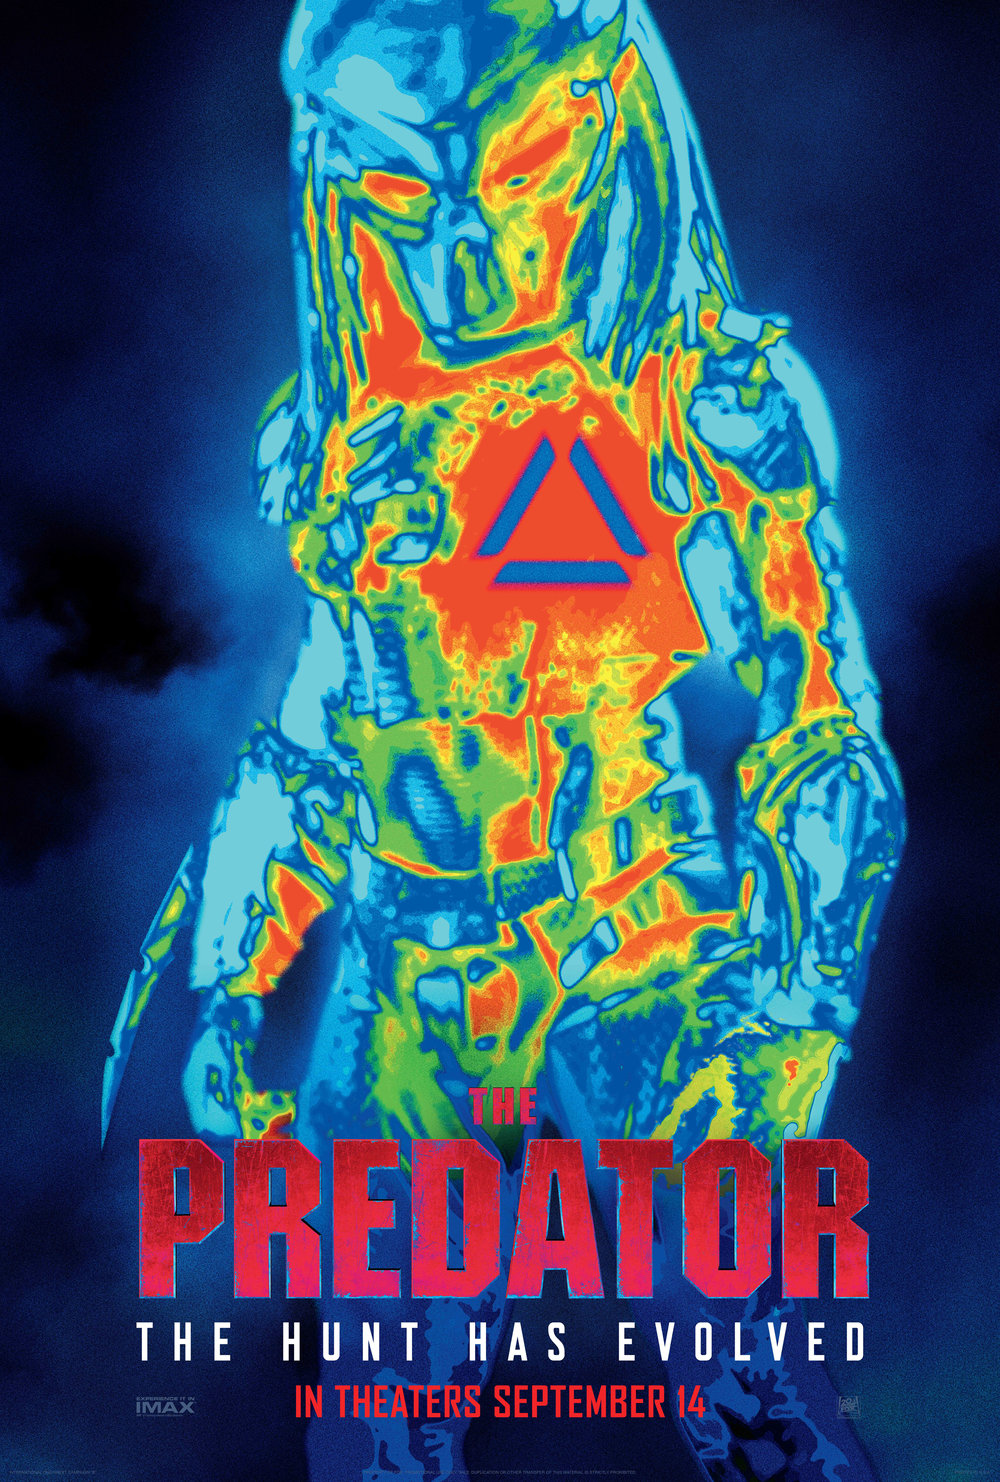 The Predator   (2018) dir. Shane Black Rated: R image: ©2018  20th Century Fox